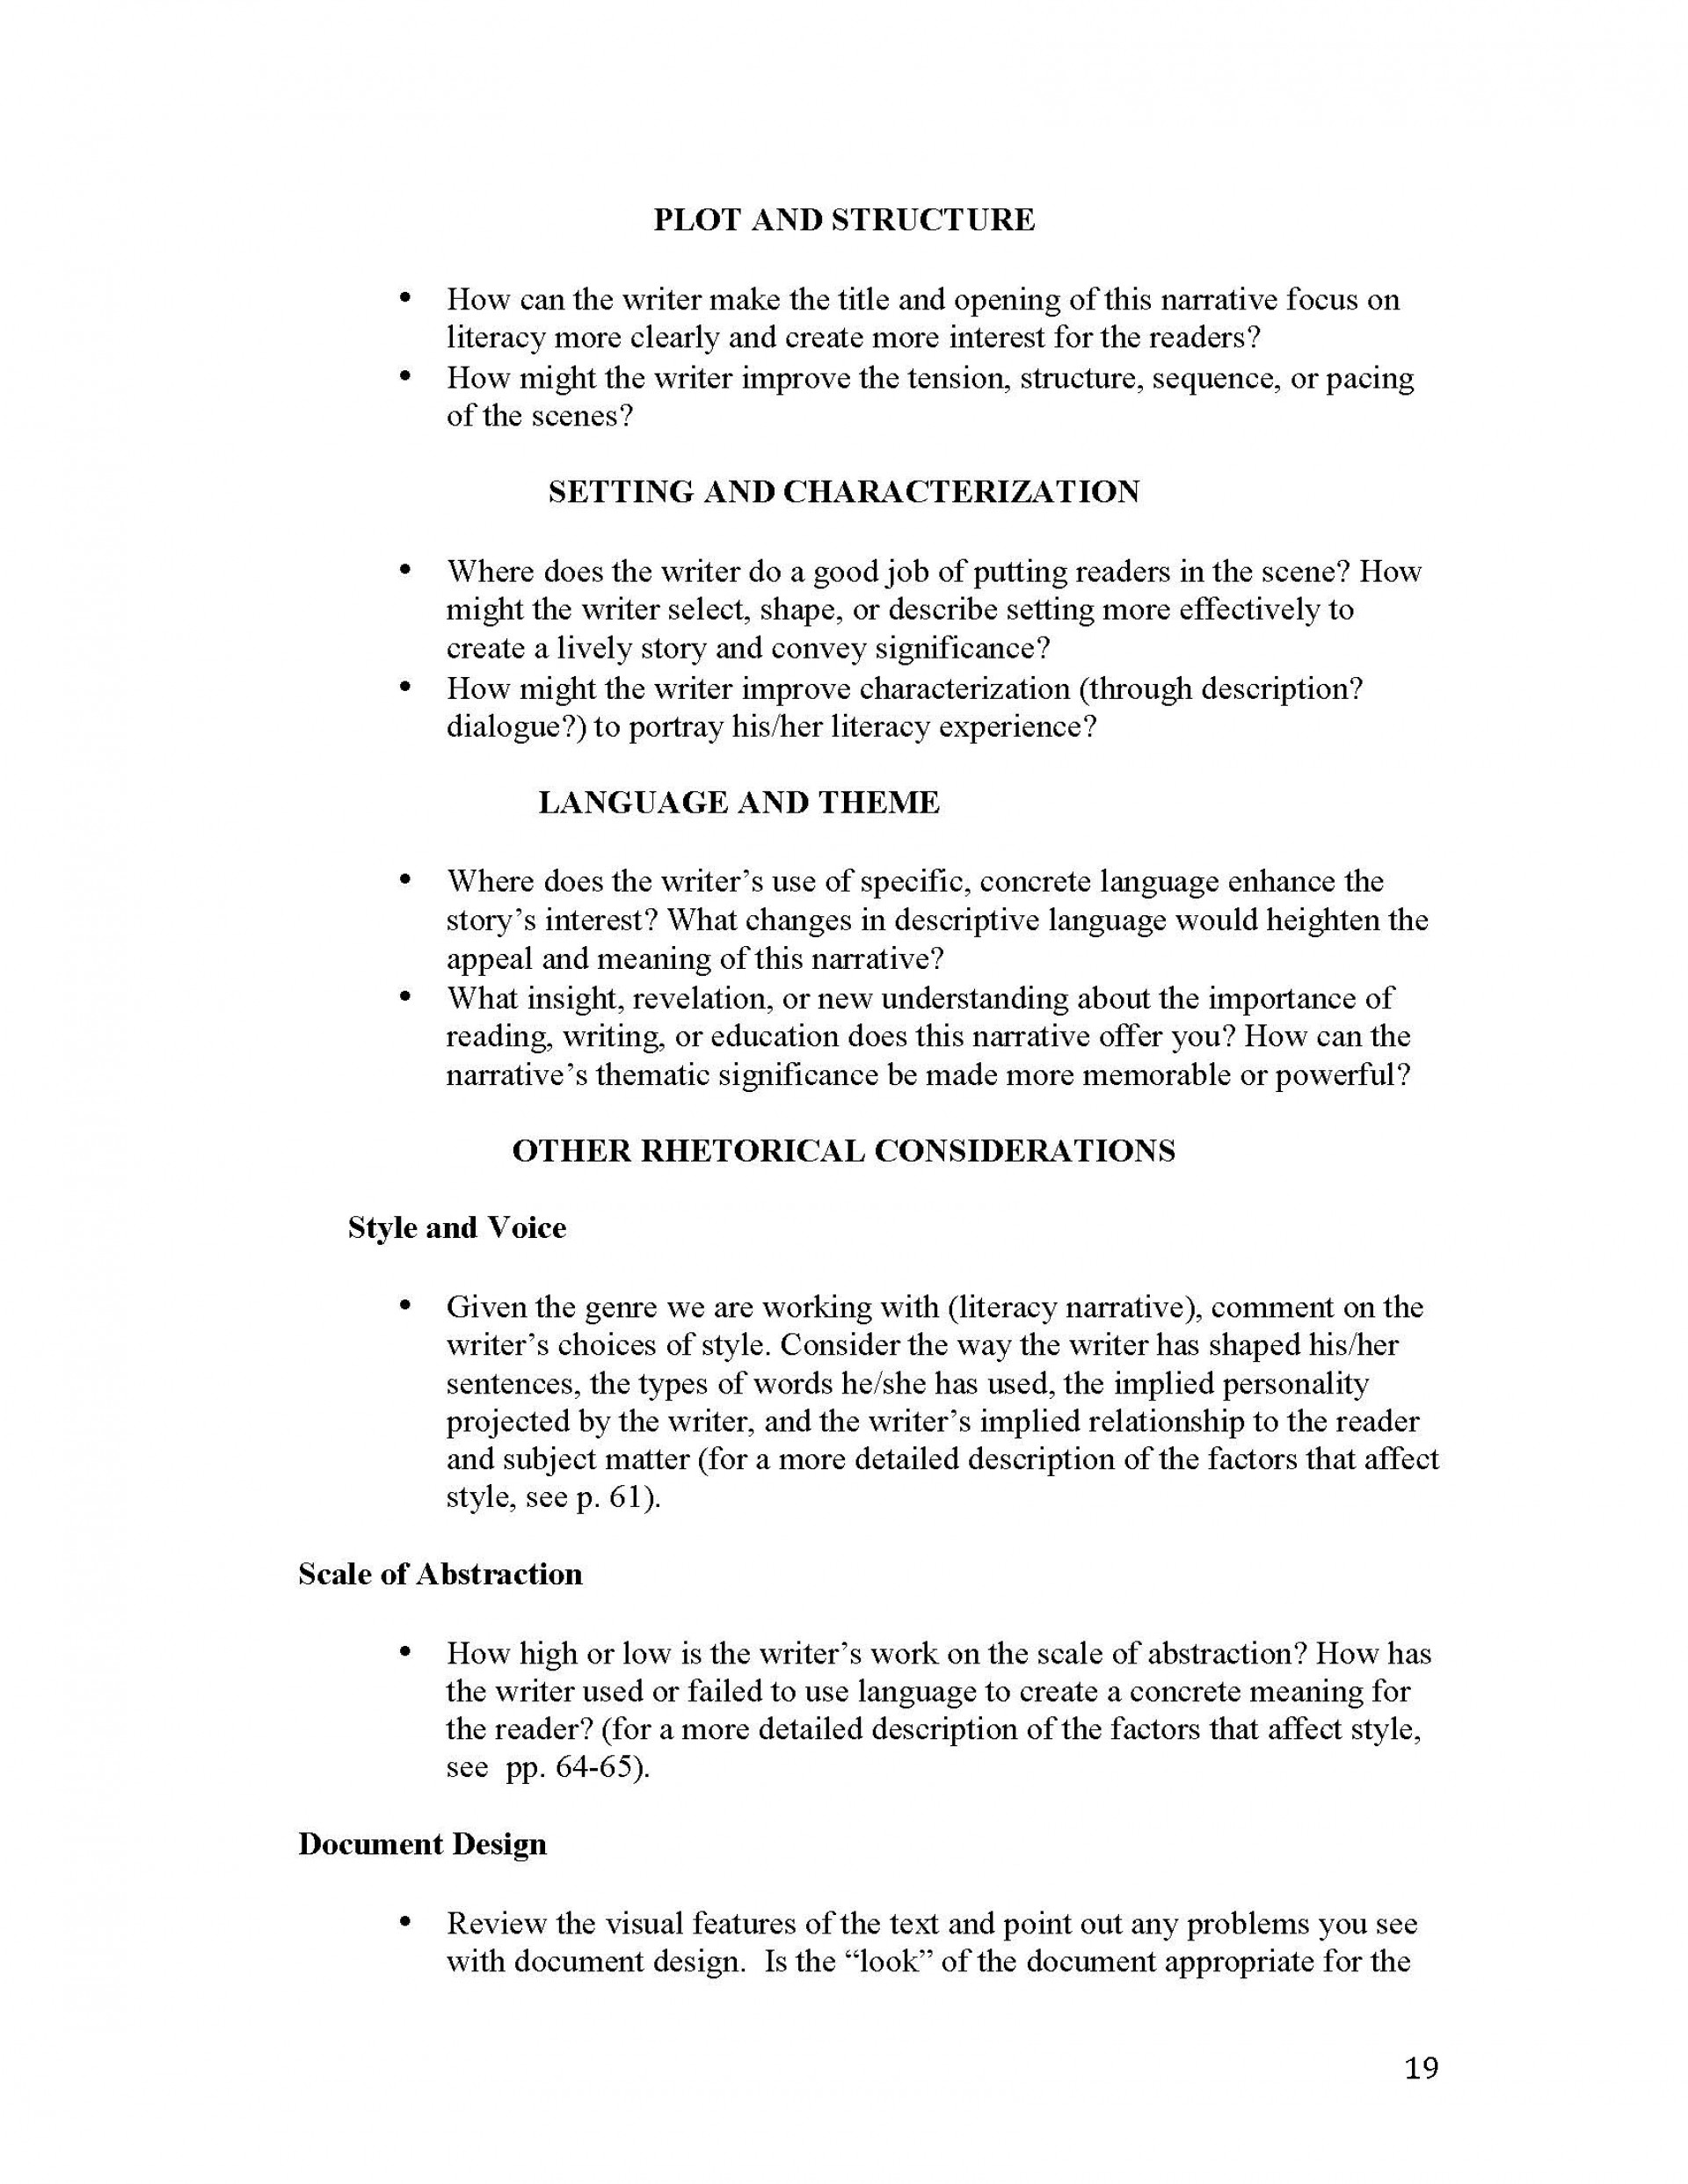 003 Literacy Narrative Essay Example Model Examples For Ielts Writing Pdf Unit 1 Instructor Copy Pa Hamburger Spm Continuous Role Of In Phenomenal Personal Sample Digital 1920